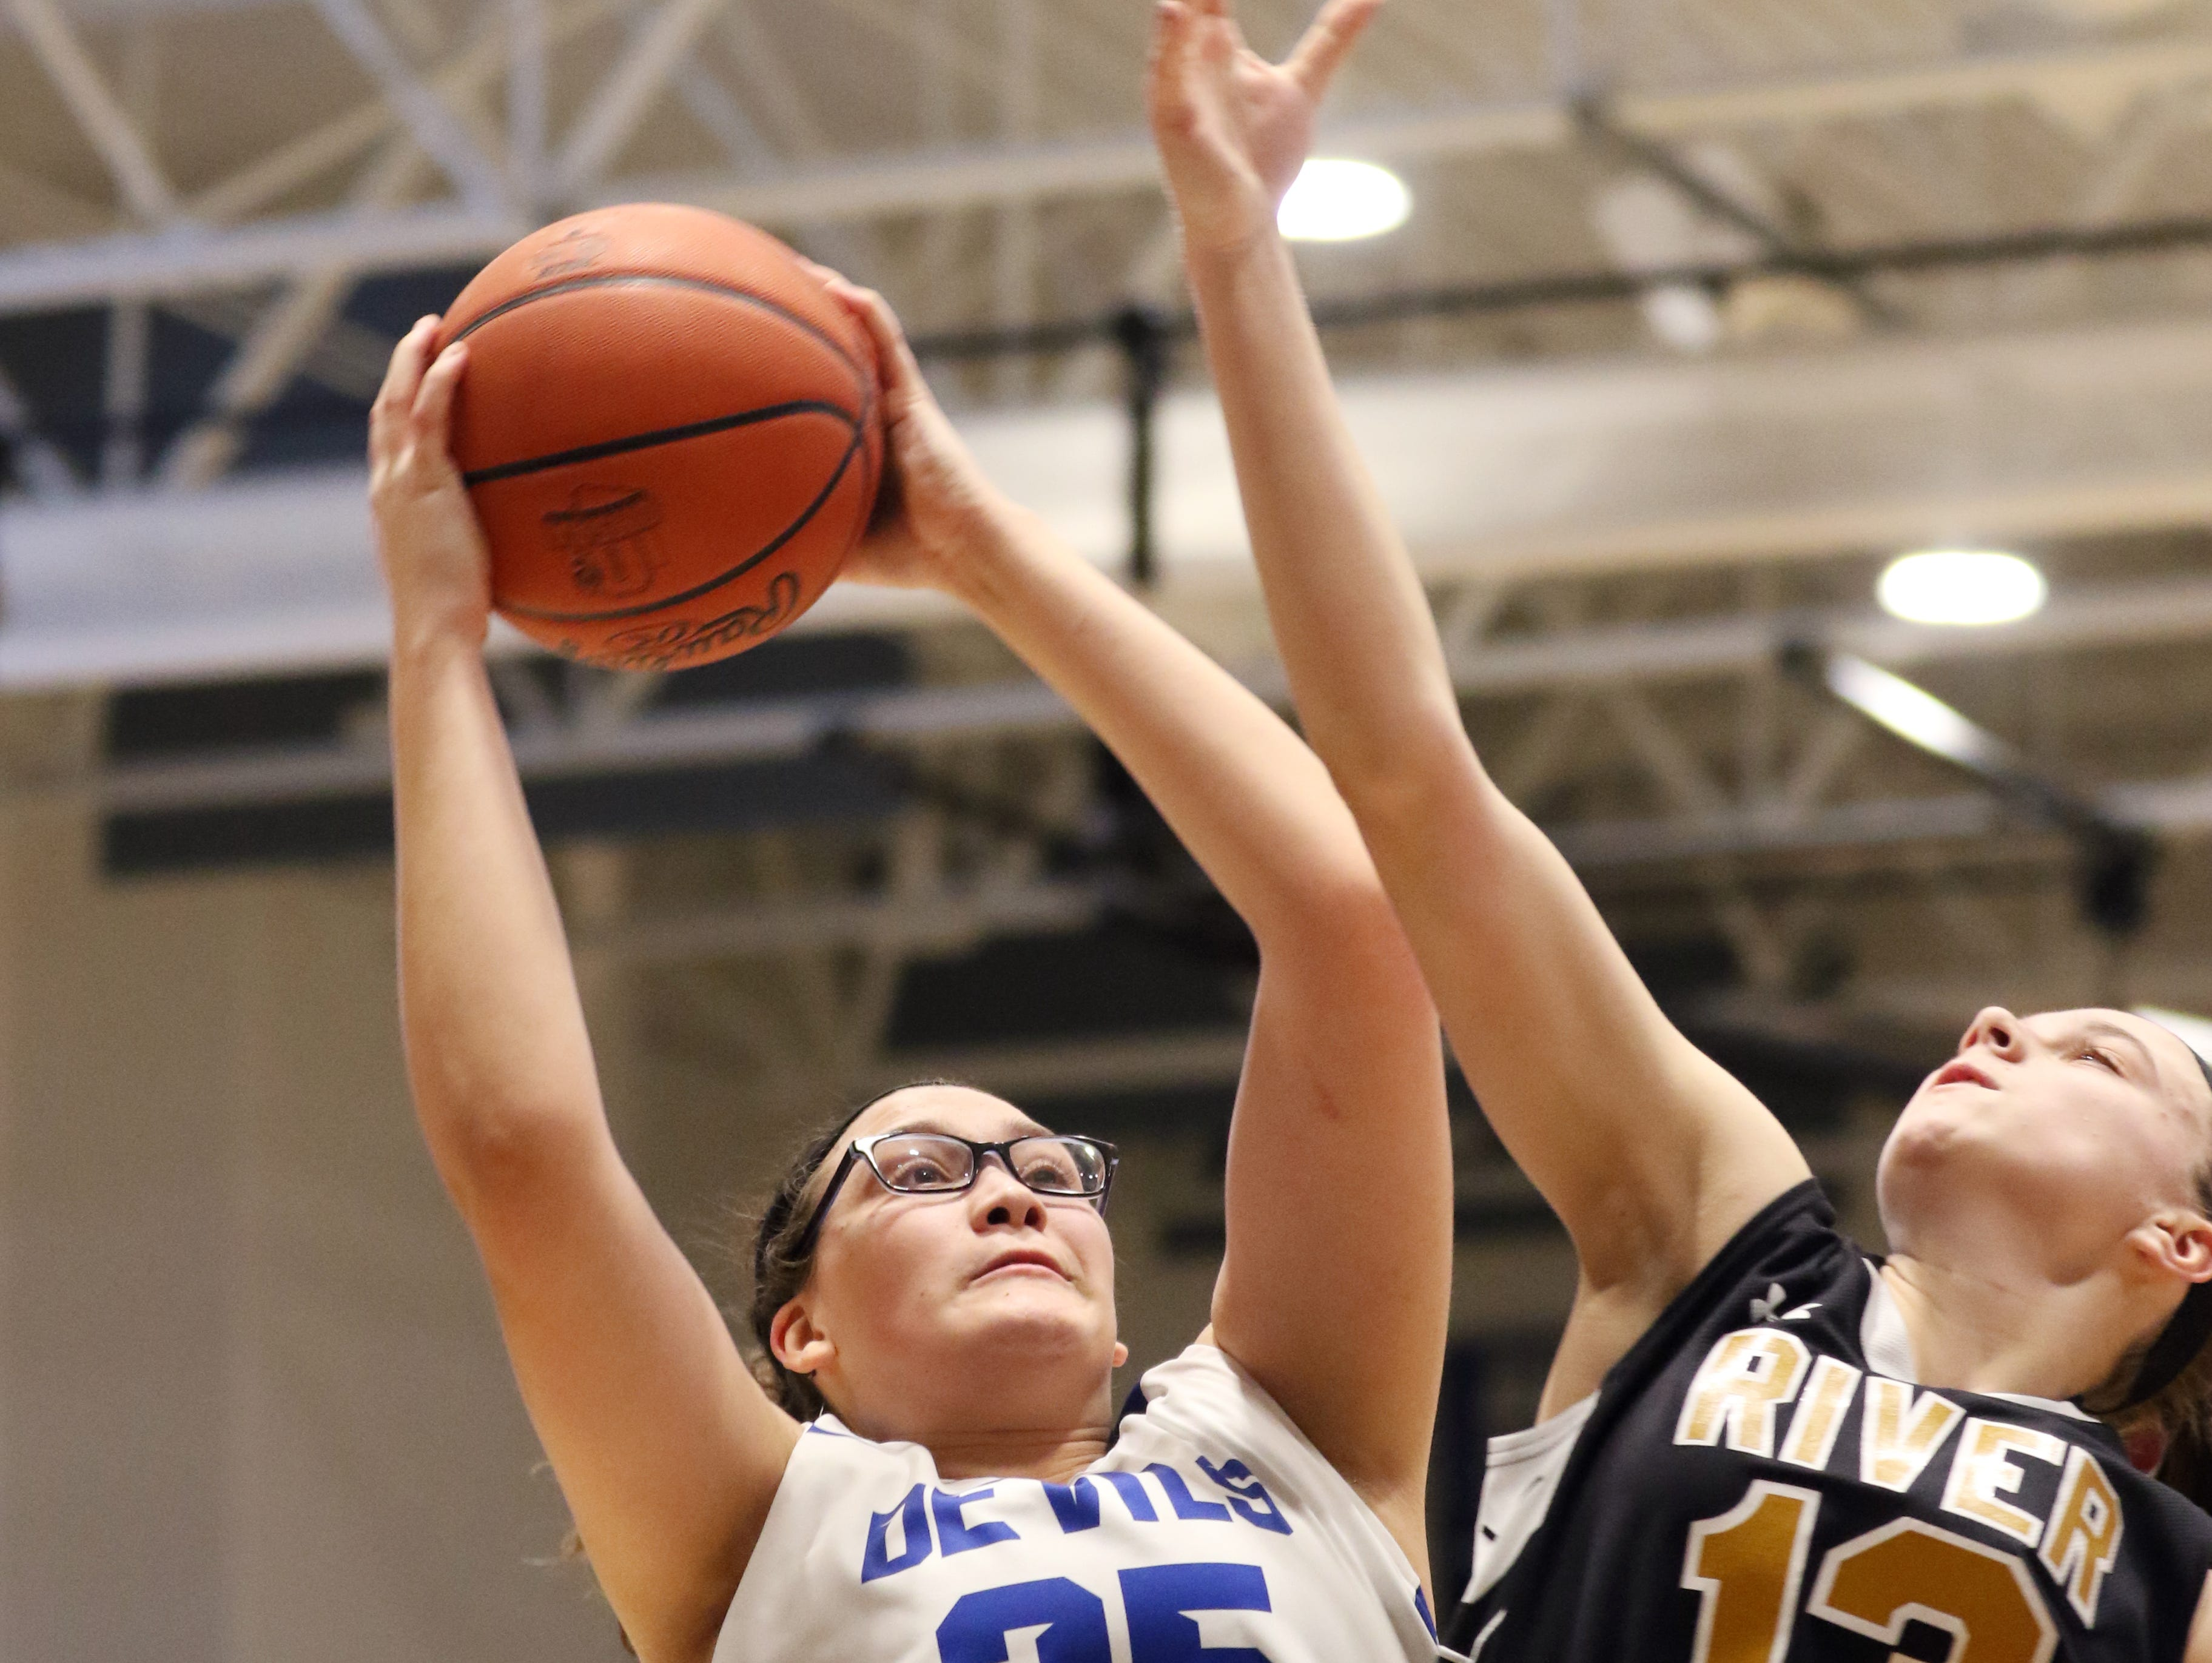 Zanesville's Alena Mayle and River View's Kelsey Hartsock go up for a rebound.